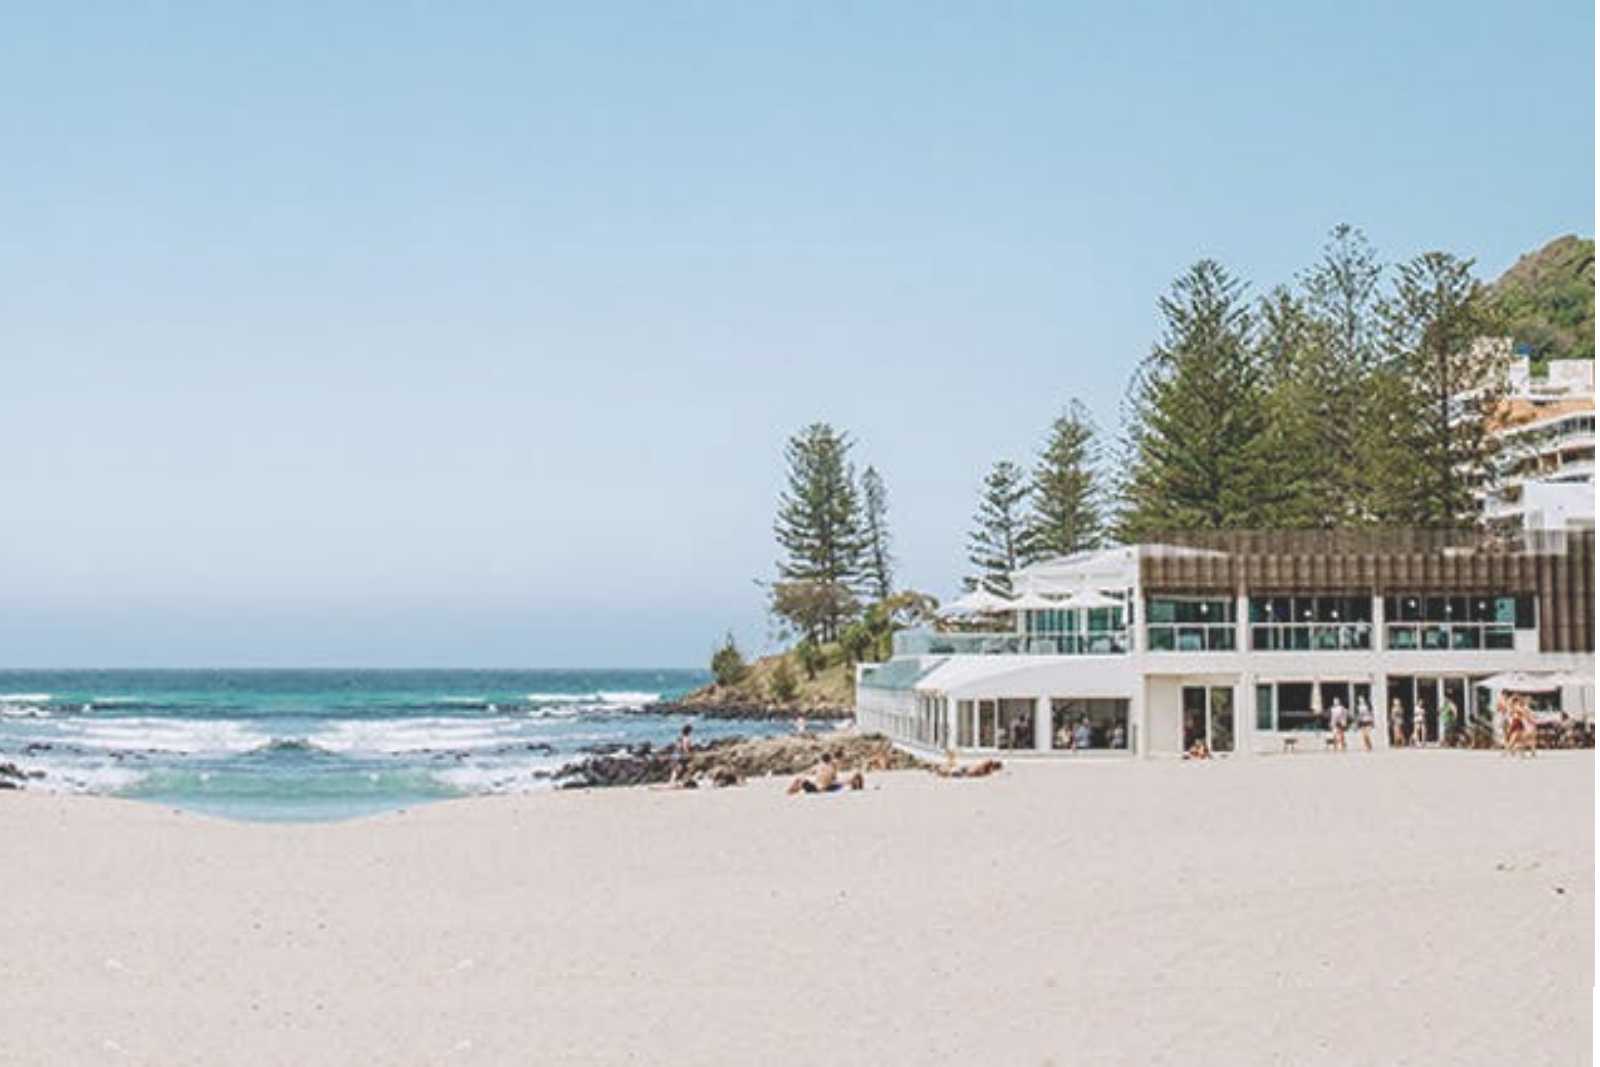 BURLEIGH BEAUTY ALMOST HERE